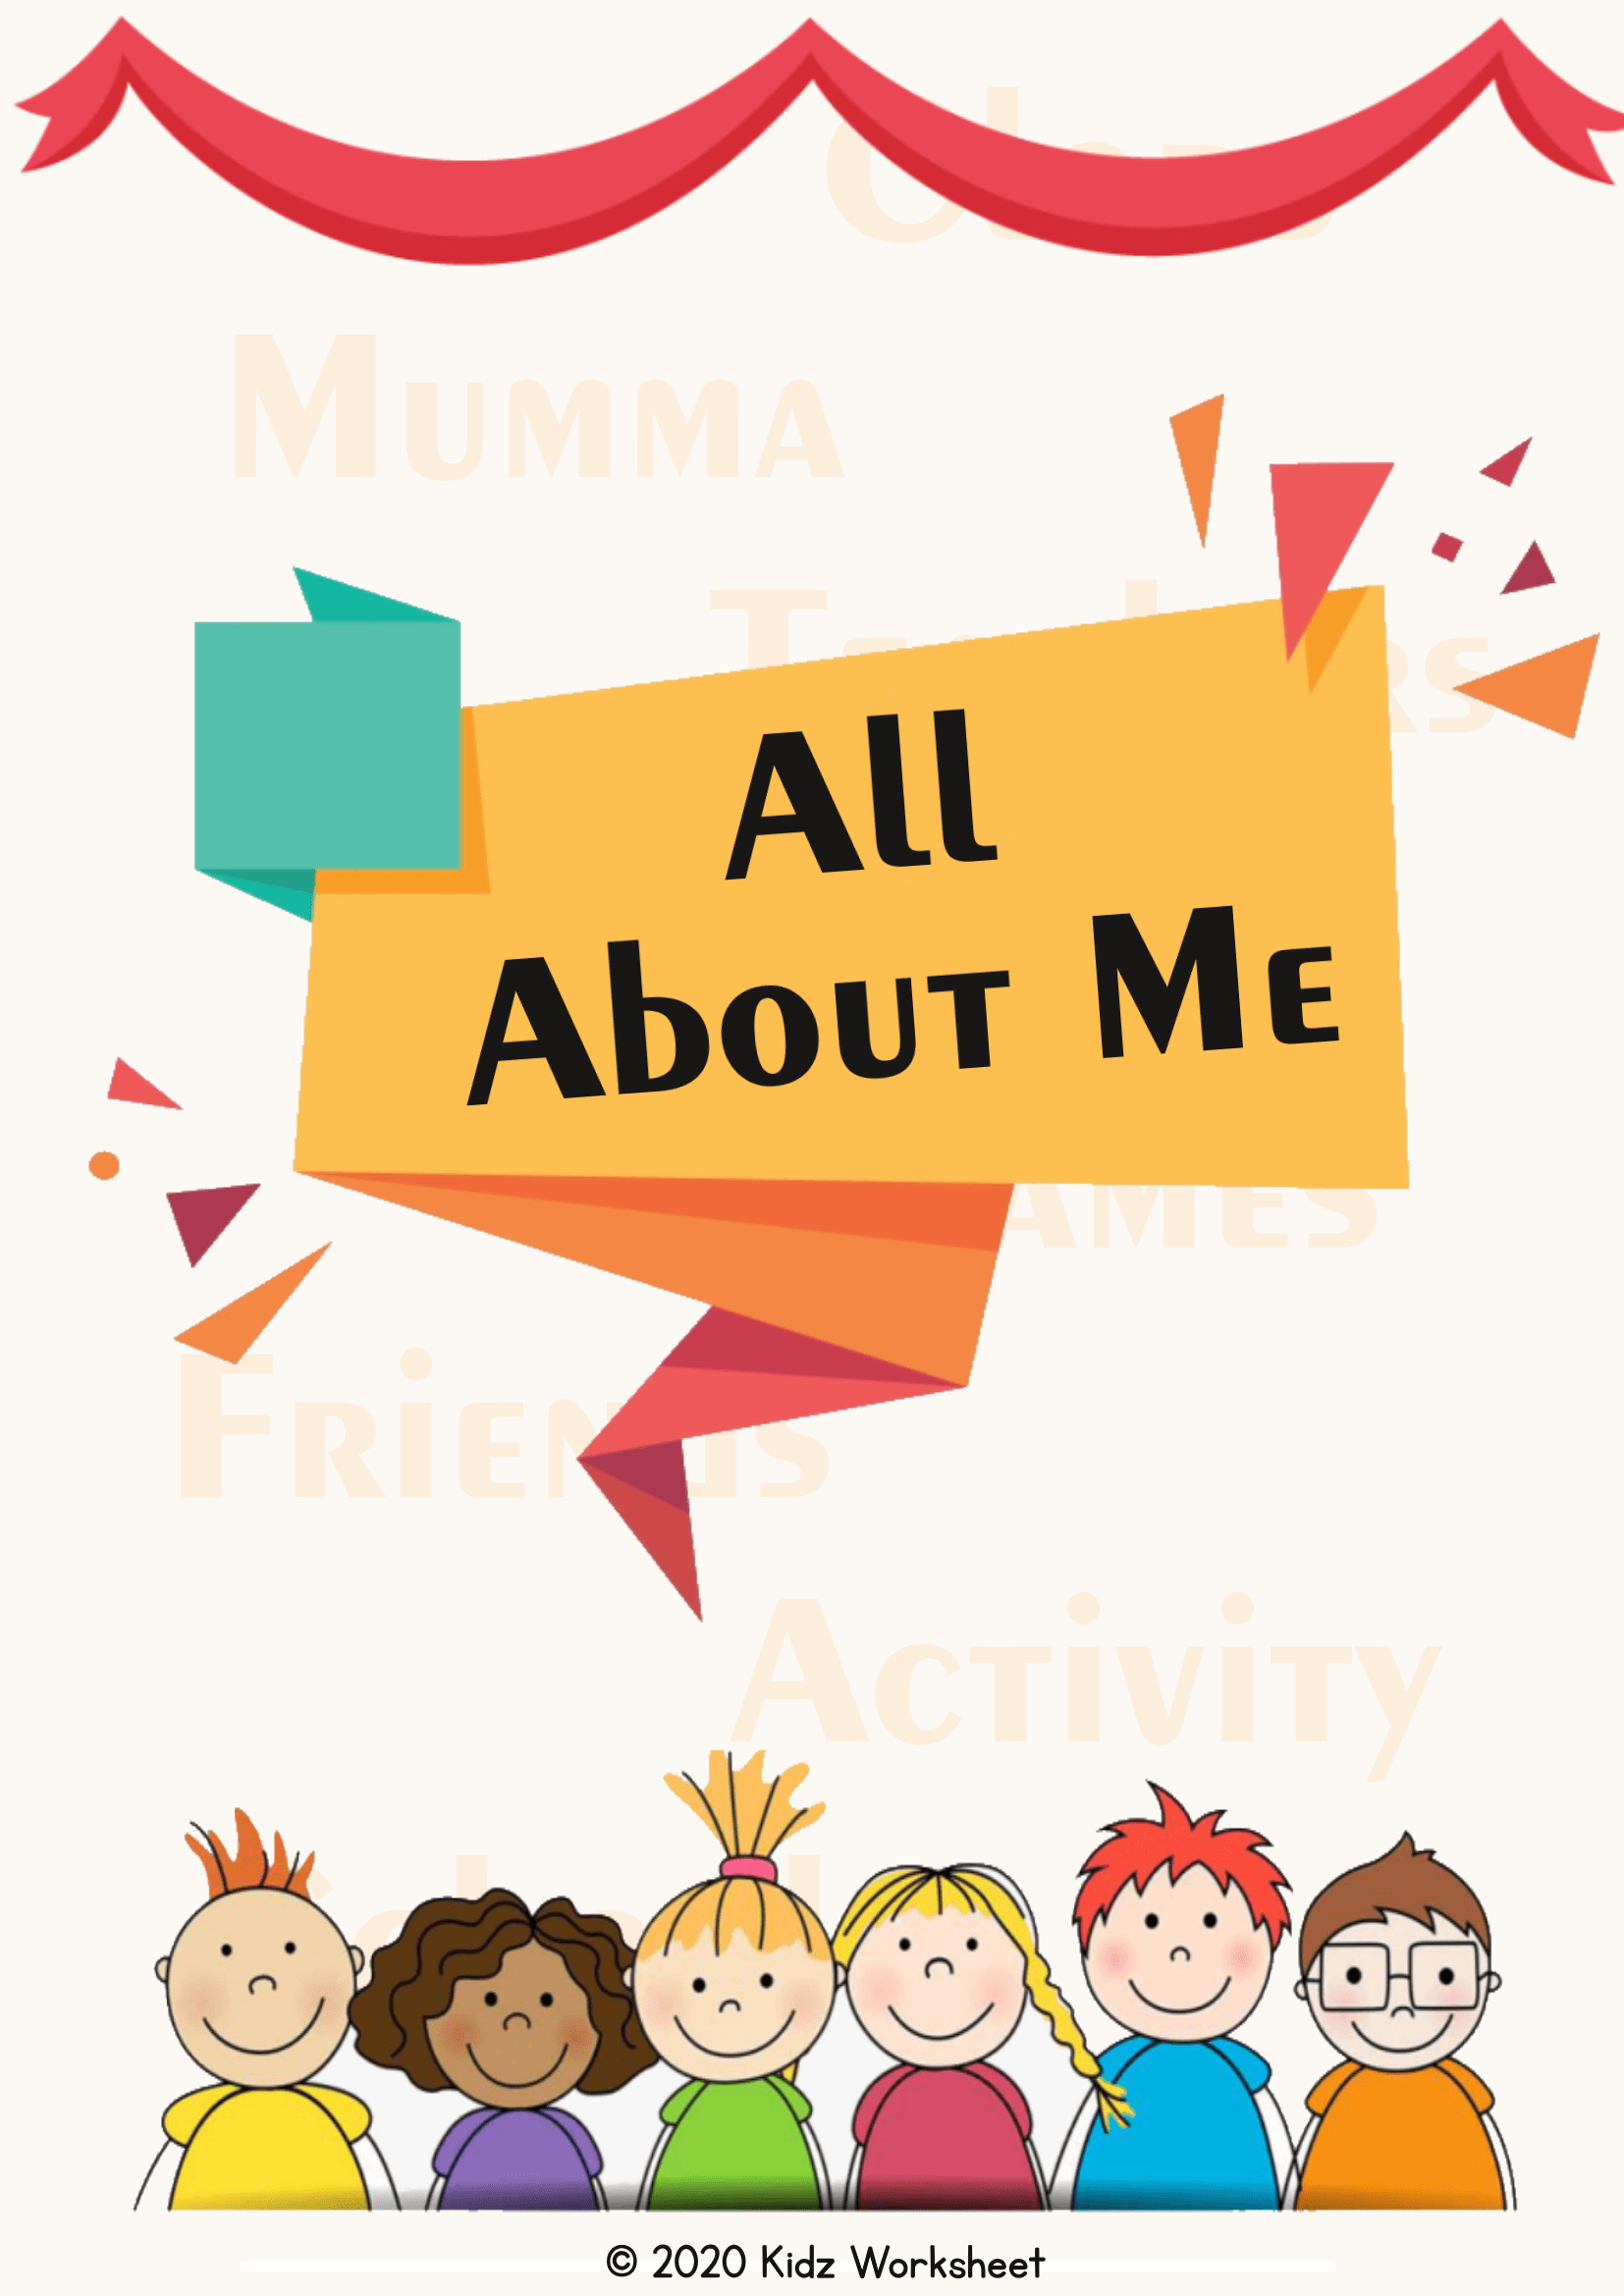 All About Me Printable Colorful Activity Worksheet For